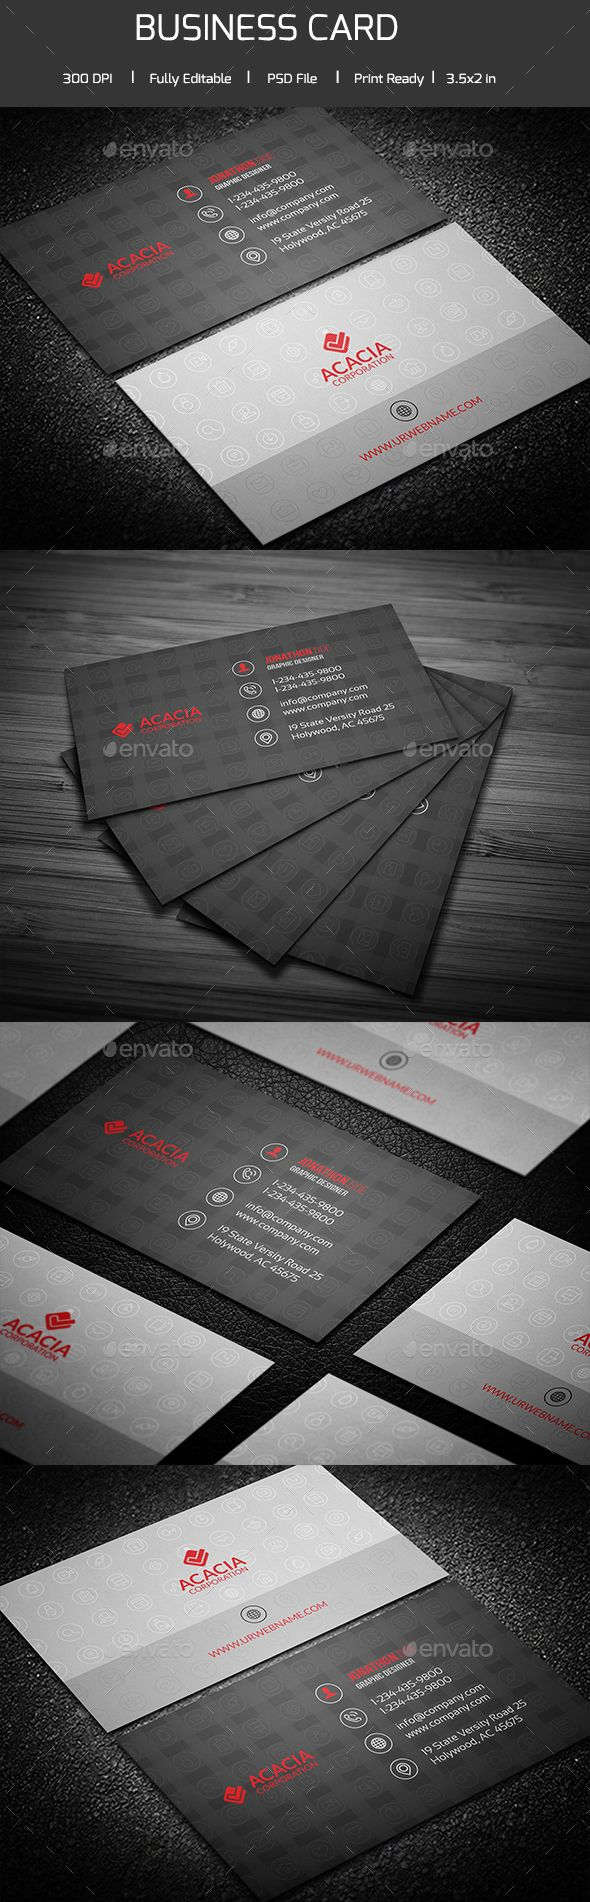 1439 best cool business cards on pinterest images on pinterest 1439 best cool business cards on pinterest images on pinterest advertising cards and cleanses magicingreecefo Image collections